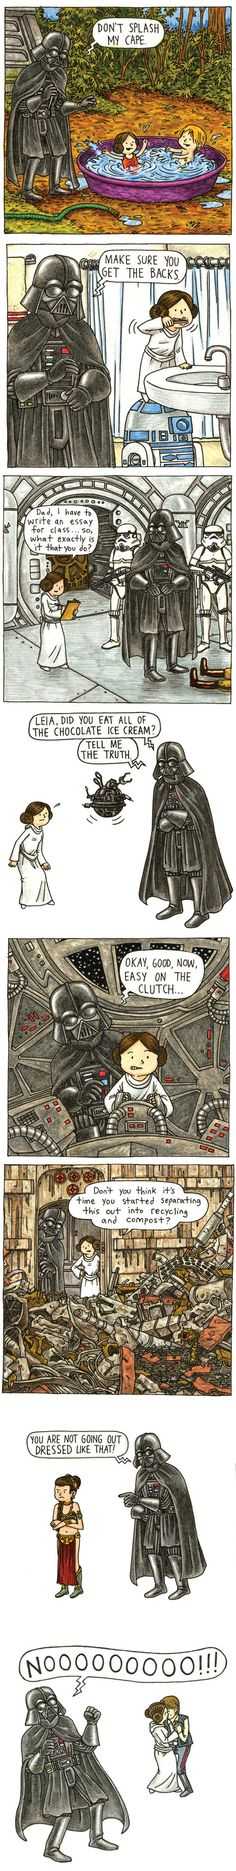 funny-Darth-Vader-father-adventure